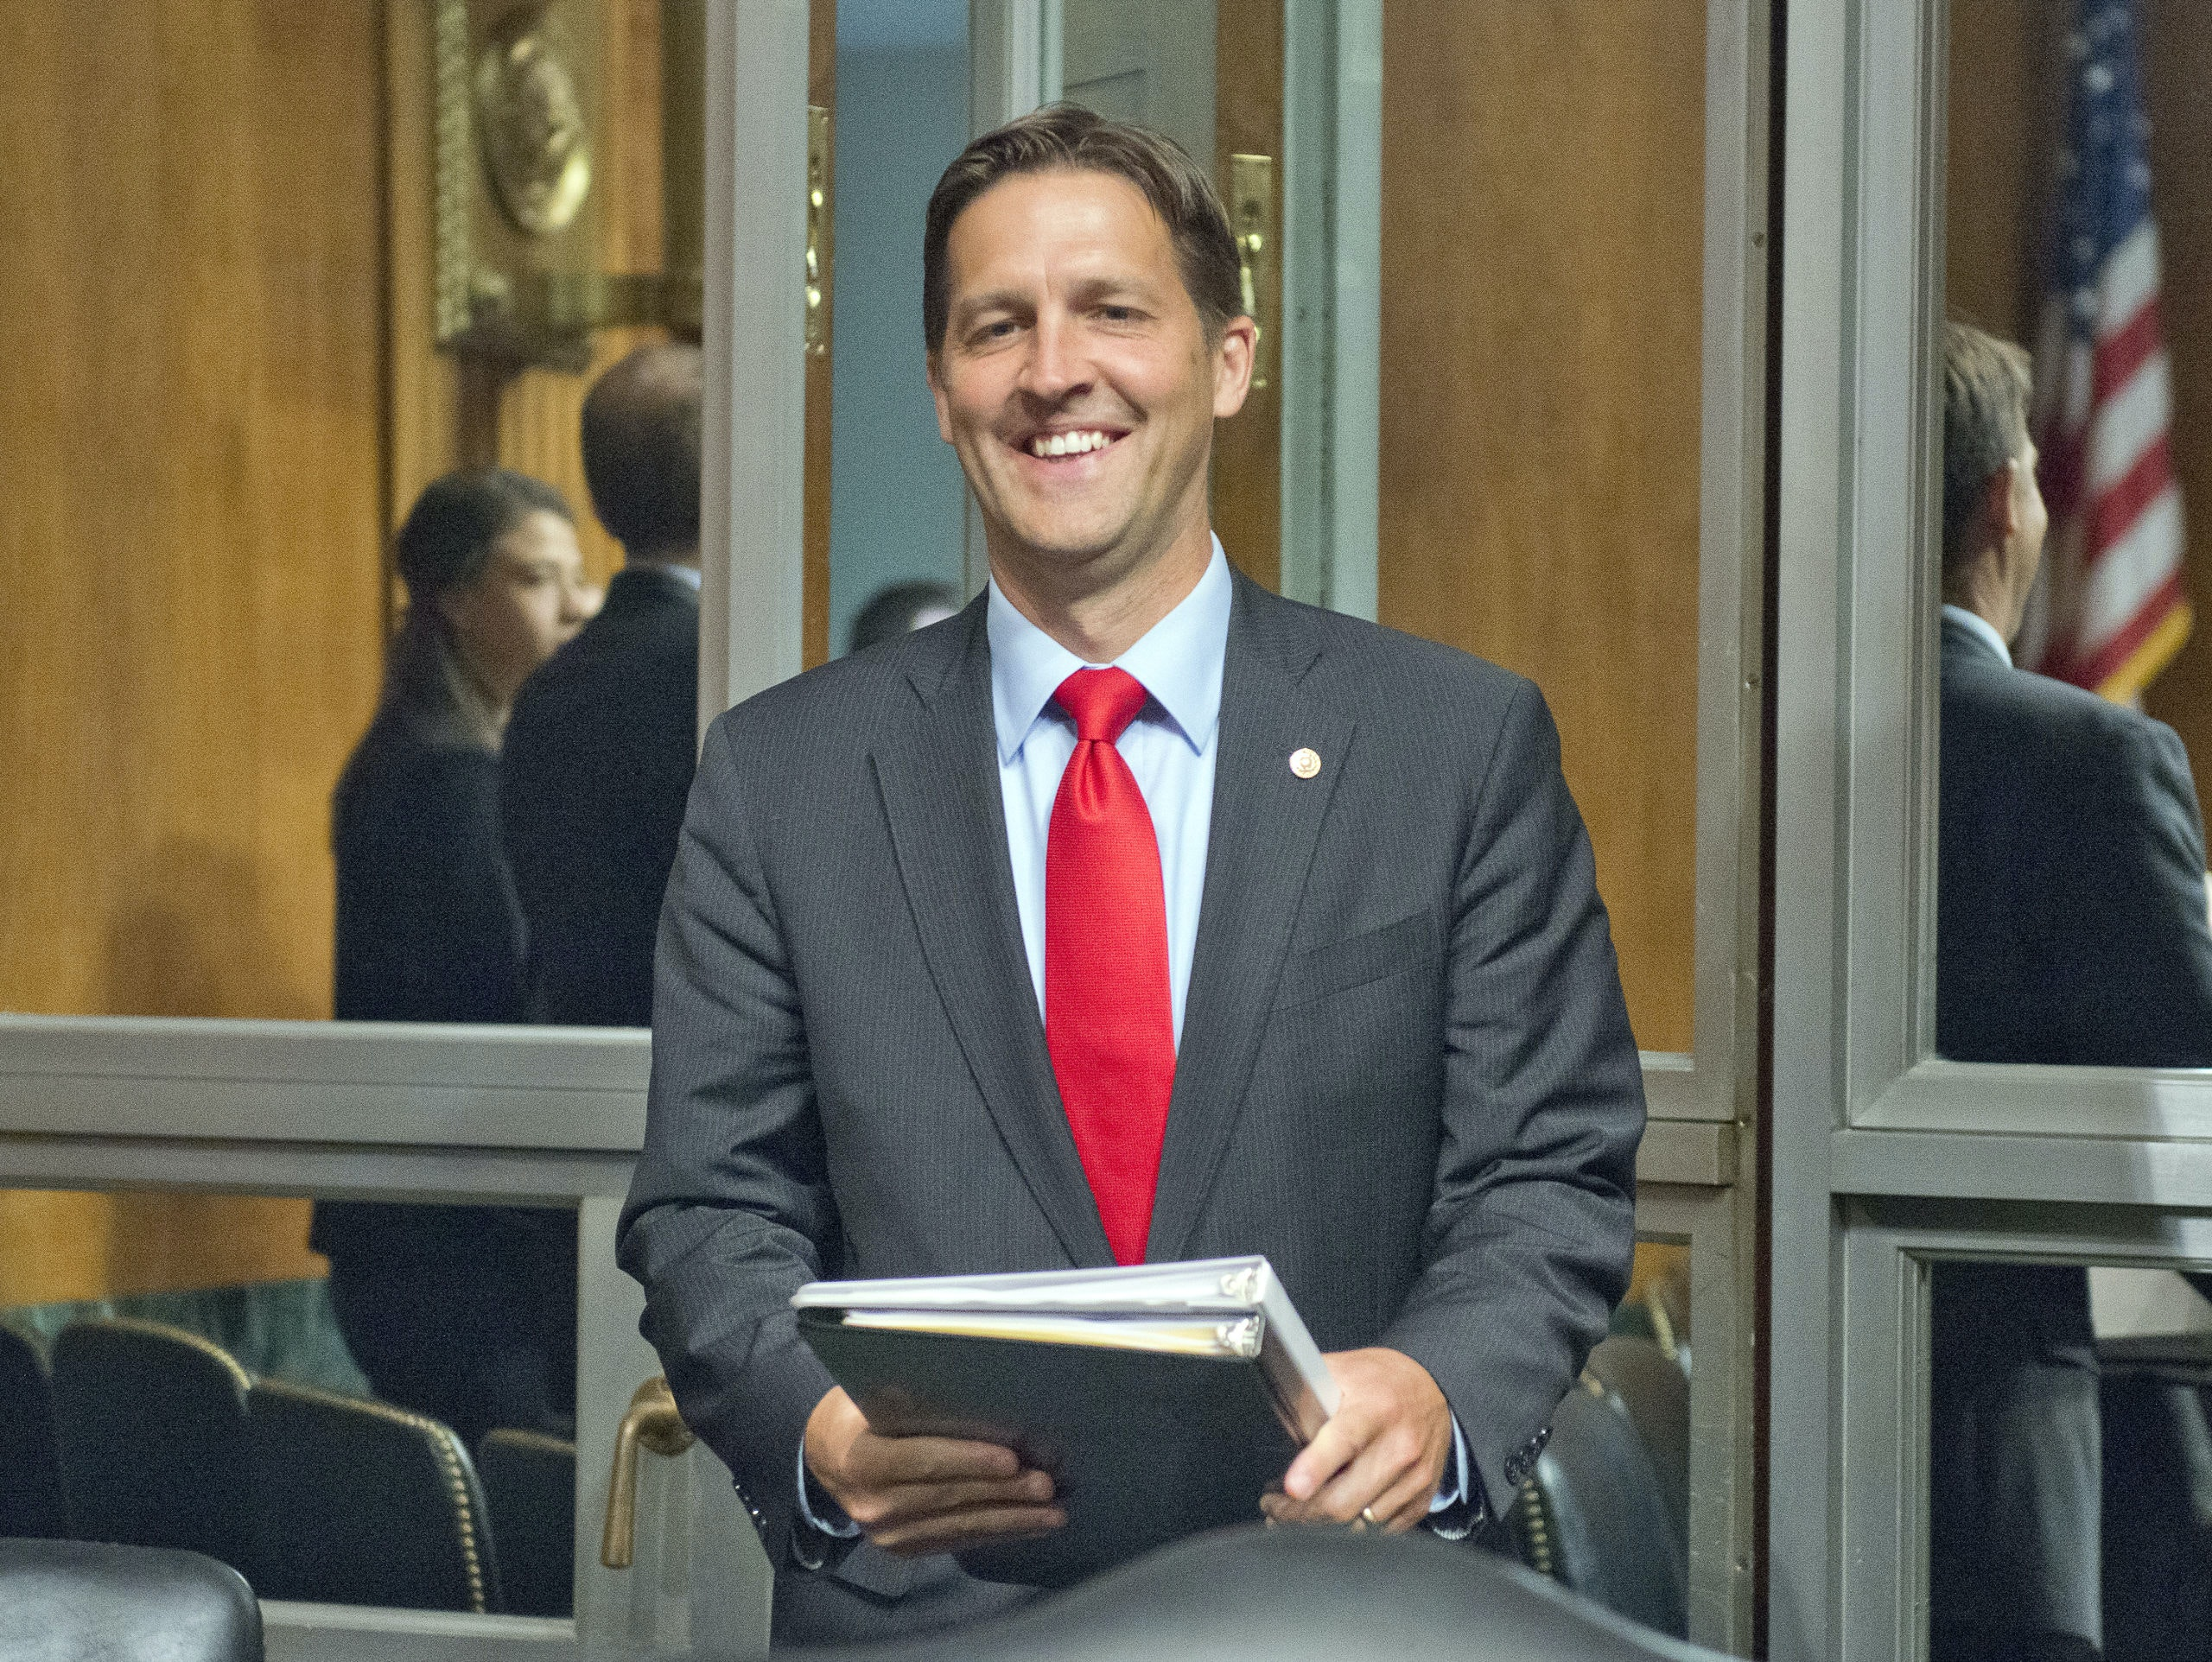 United States Senator Ben Sasse (Republican of Nebraska) arrives to listen to Christopher A. Wray testify on his nomination to be Director of the Federal Bureau of Investigation (FBI) before the US Senate Committee on the Judiciary on Capitol Hill in Washington, DC on Wednesday, July 12, 2017. Credit: Ron Sachs / CNP (RESTRICTION: NO New York or New Jersey Newspapers or newspapers within a 75 mile radius of New York City) - NO WIRE SERVICE - Photo: Ron Sachs/Consolidated/dpa Photo via Newscom